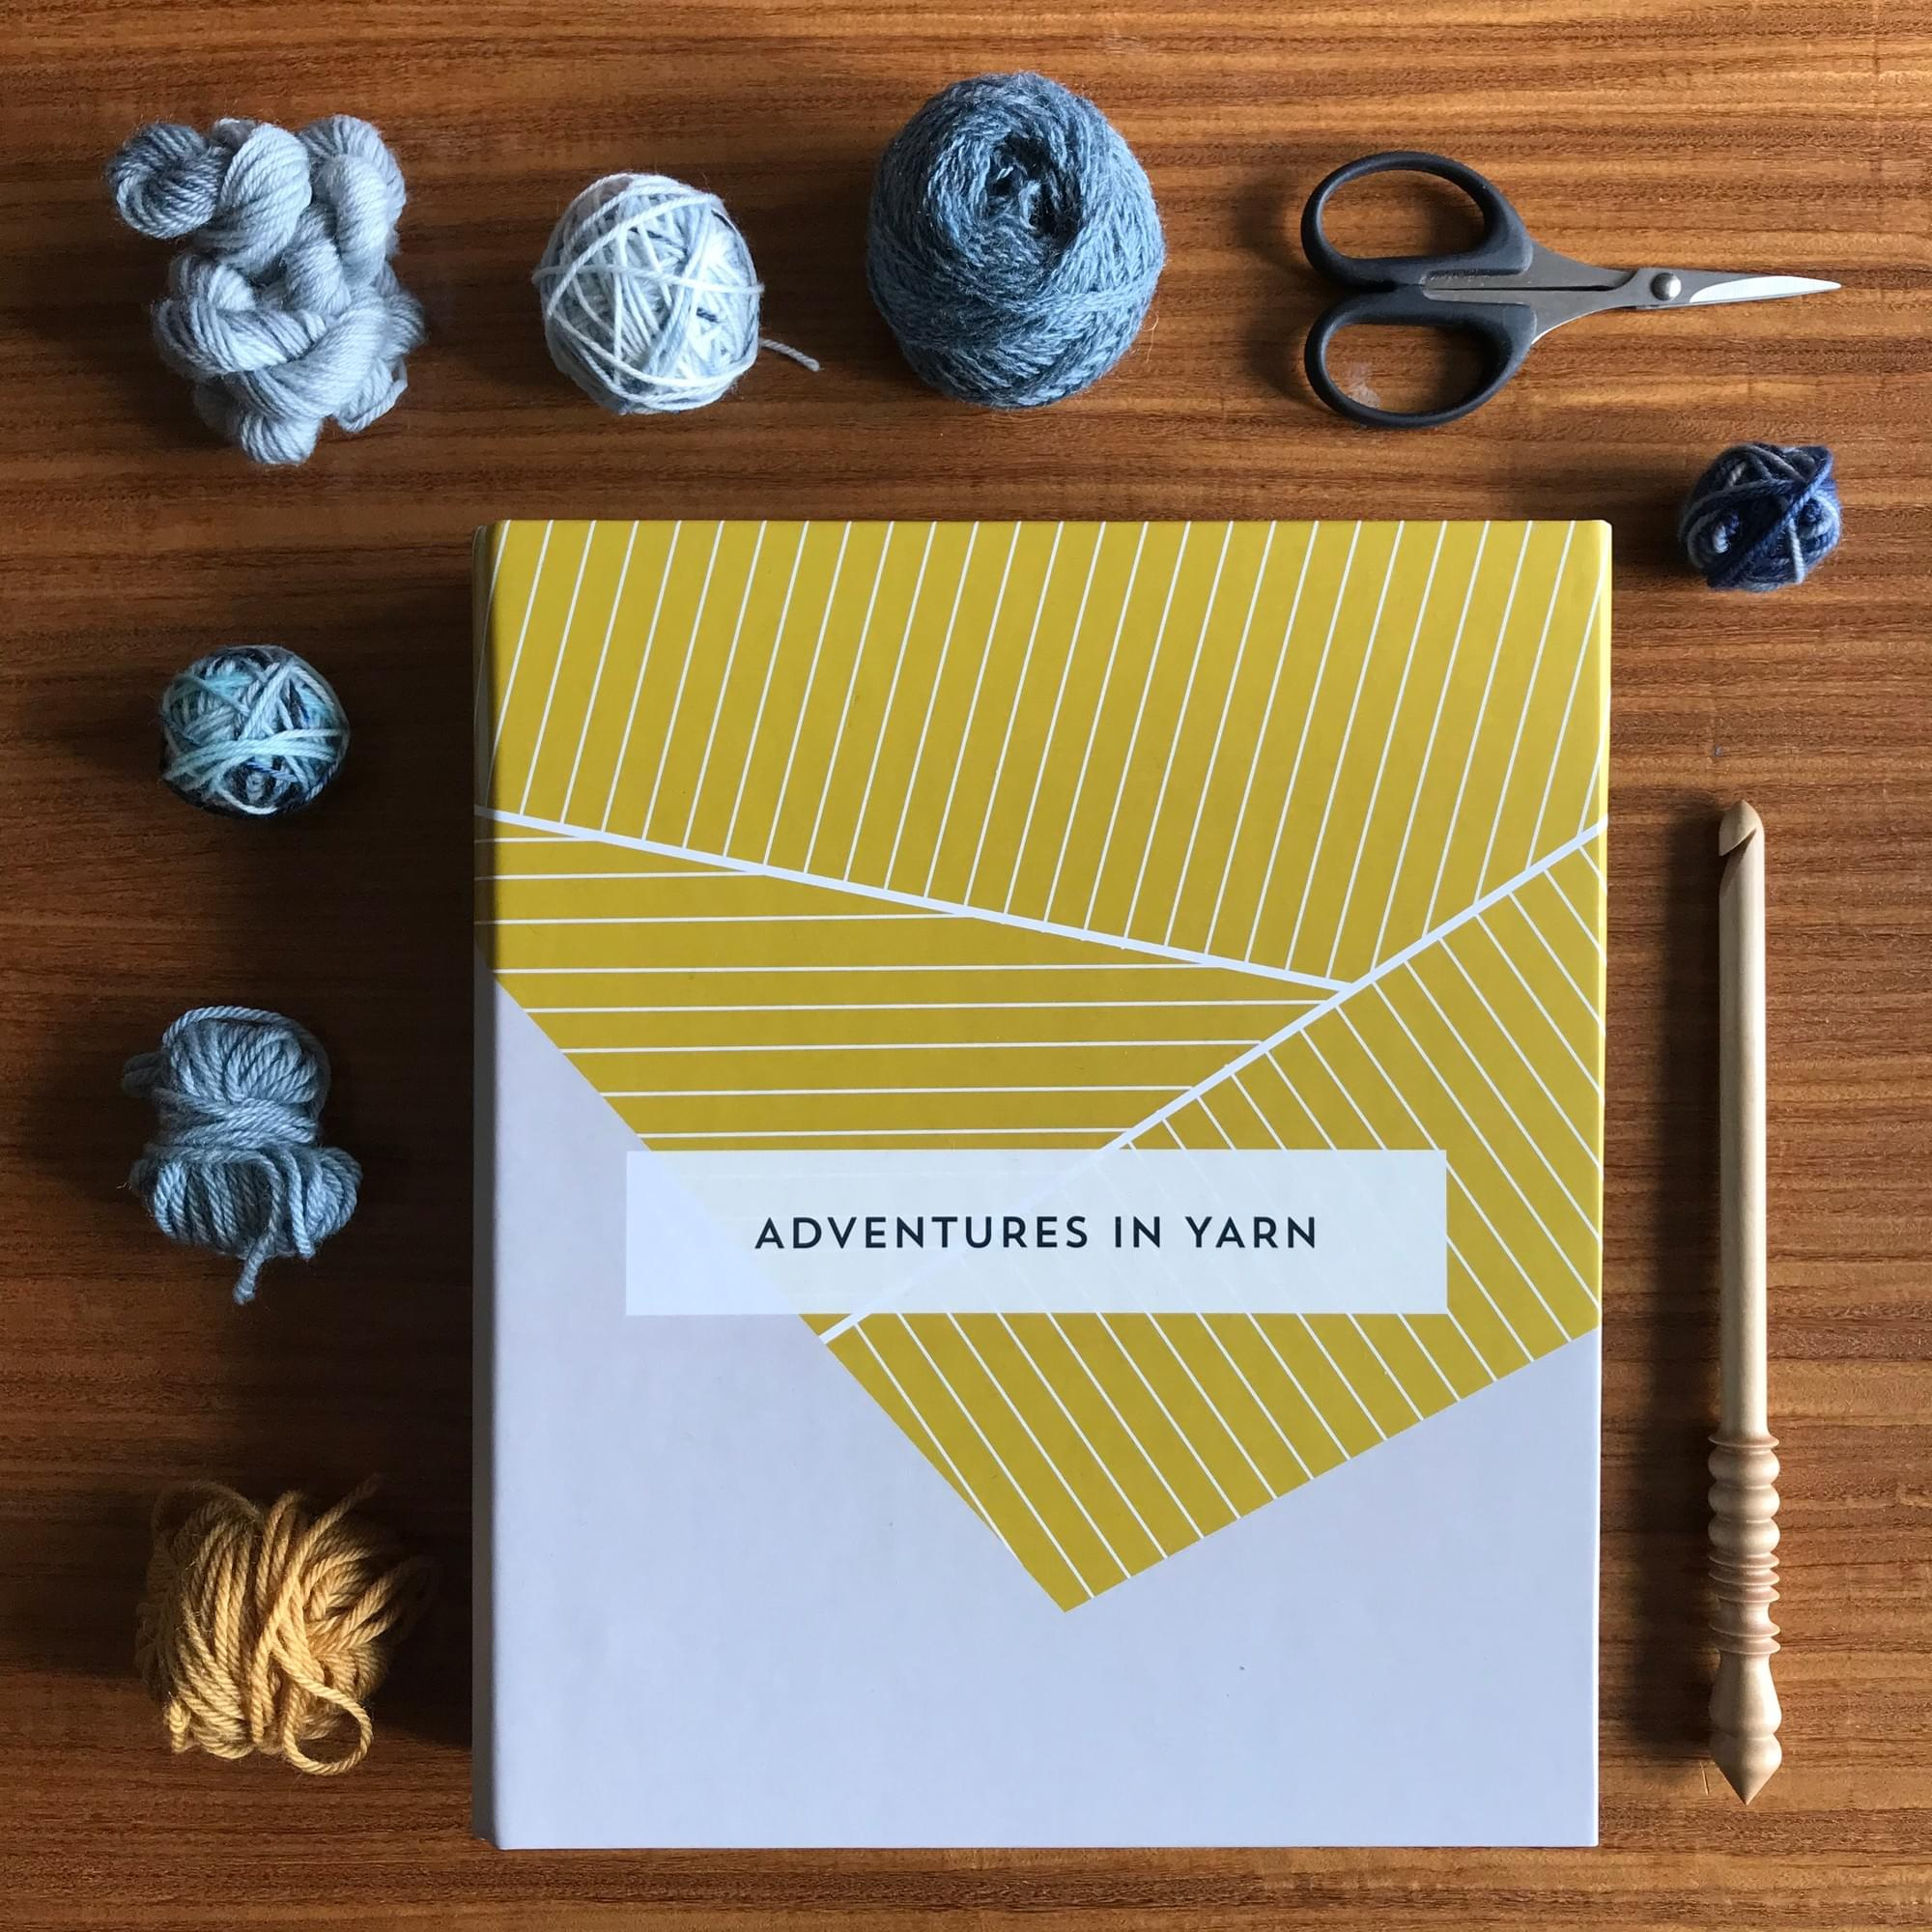 a beautiful hardback notebook organiser lays on a table. The book is coloured grey and mustard, with a folded paper design on the cover.